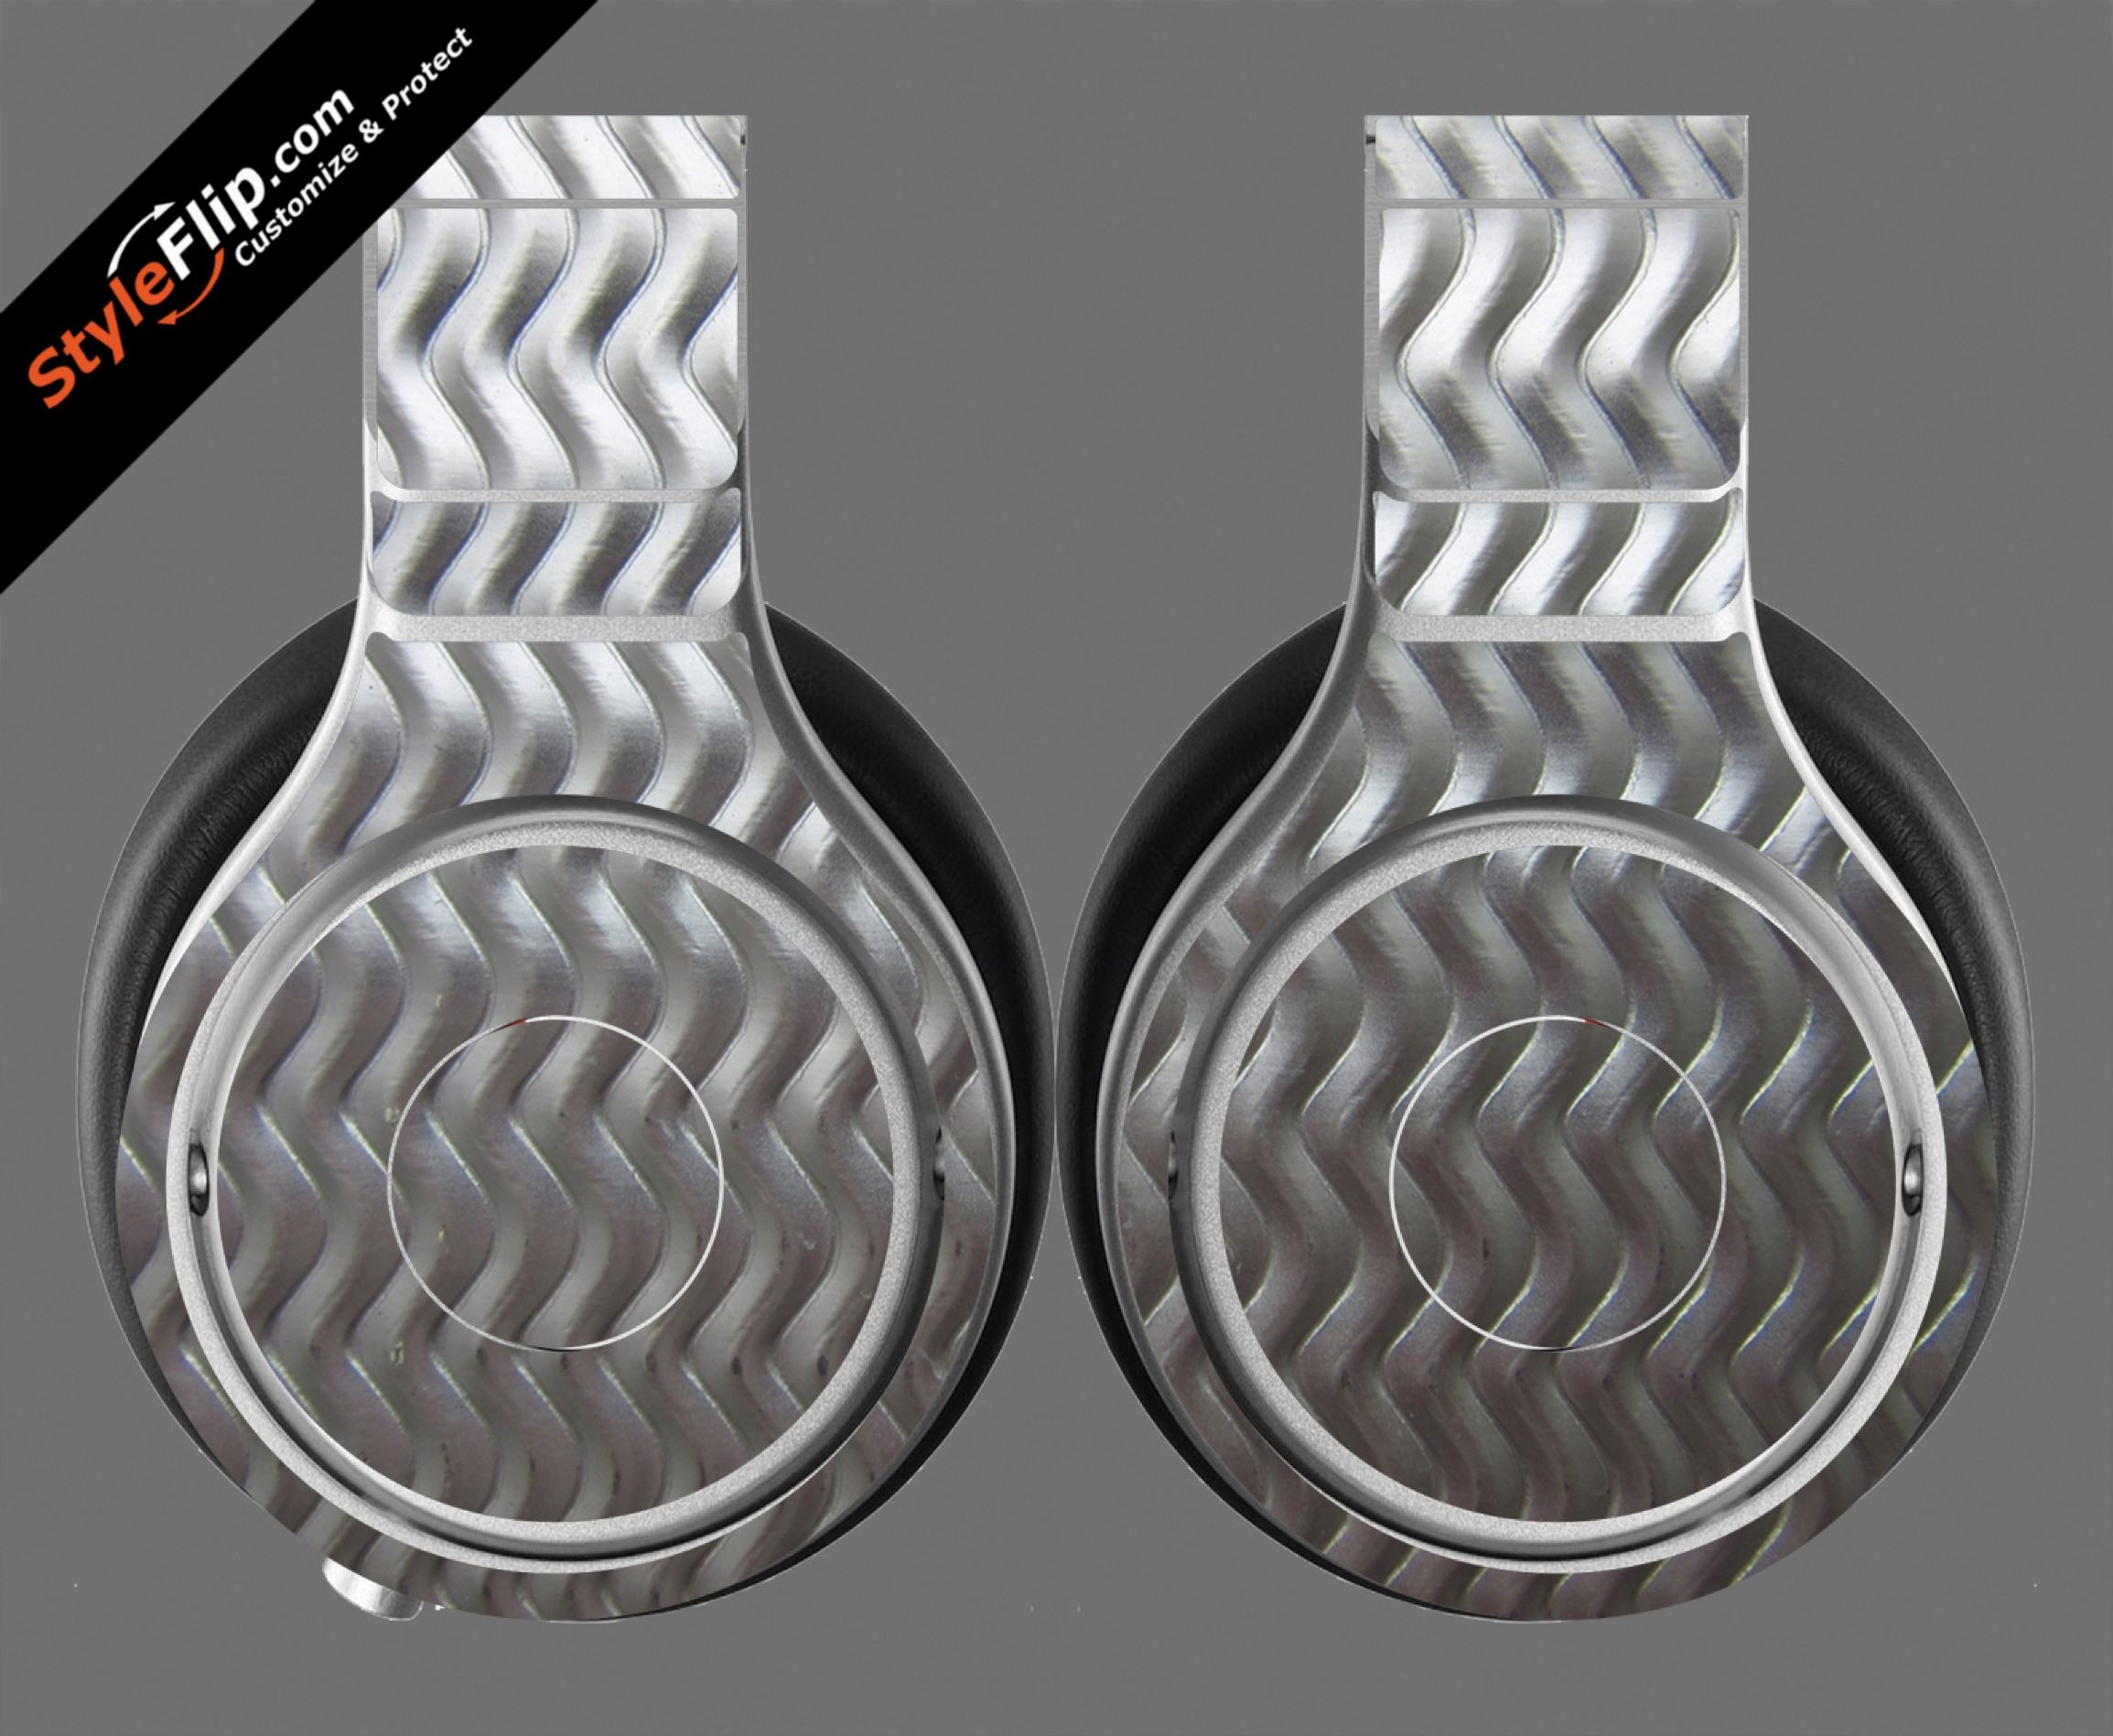 Embossed Beats By Dr. Dre Beats Pro Model